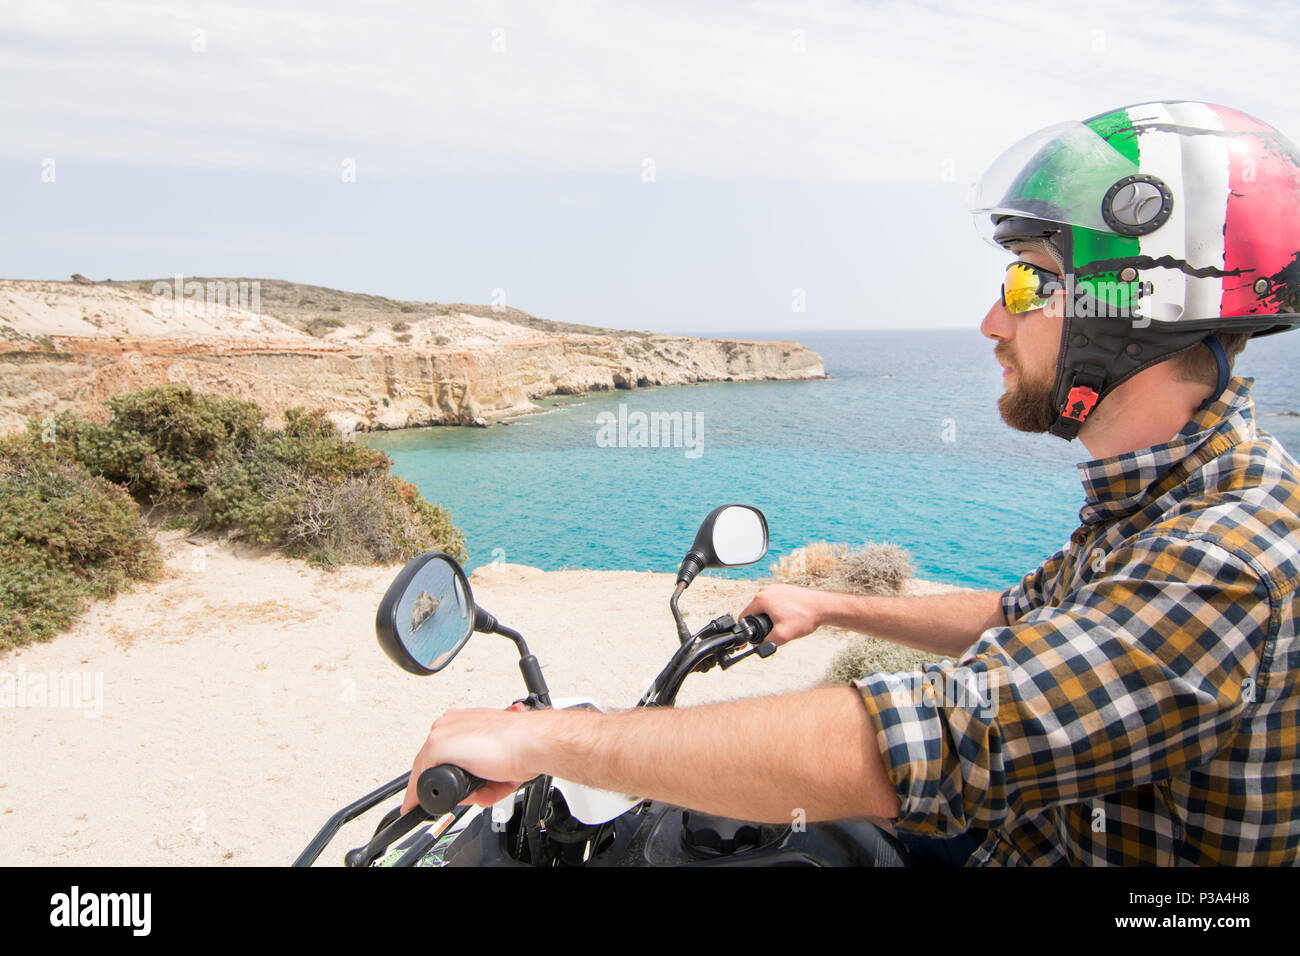 Young Man Driving Rental Quad Bike On Seaside Road In Milos Island